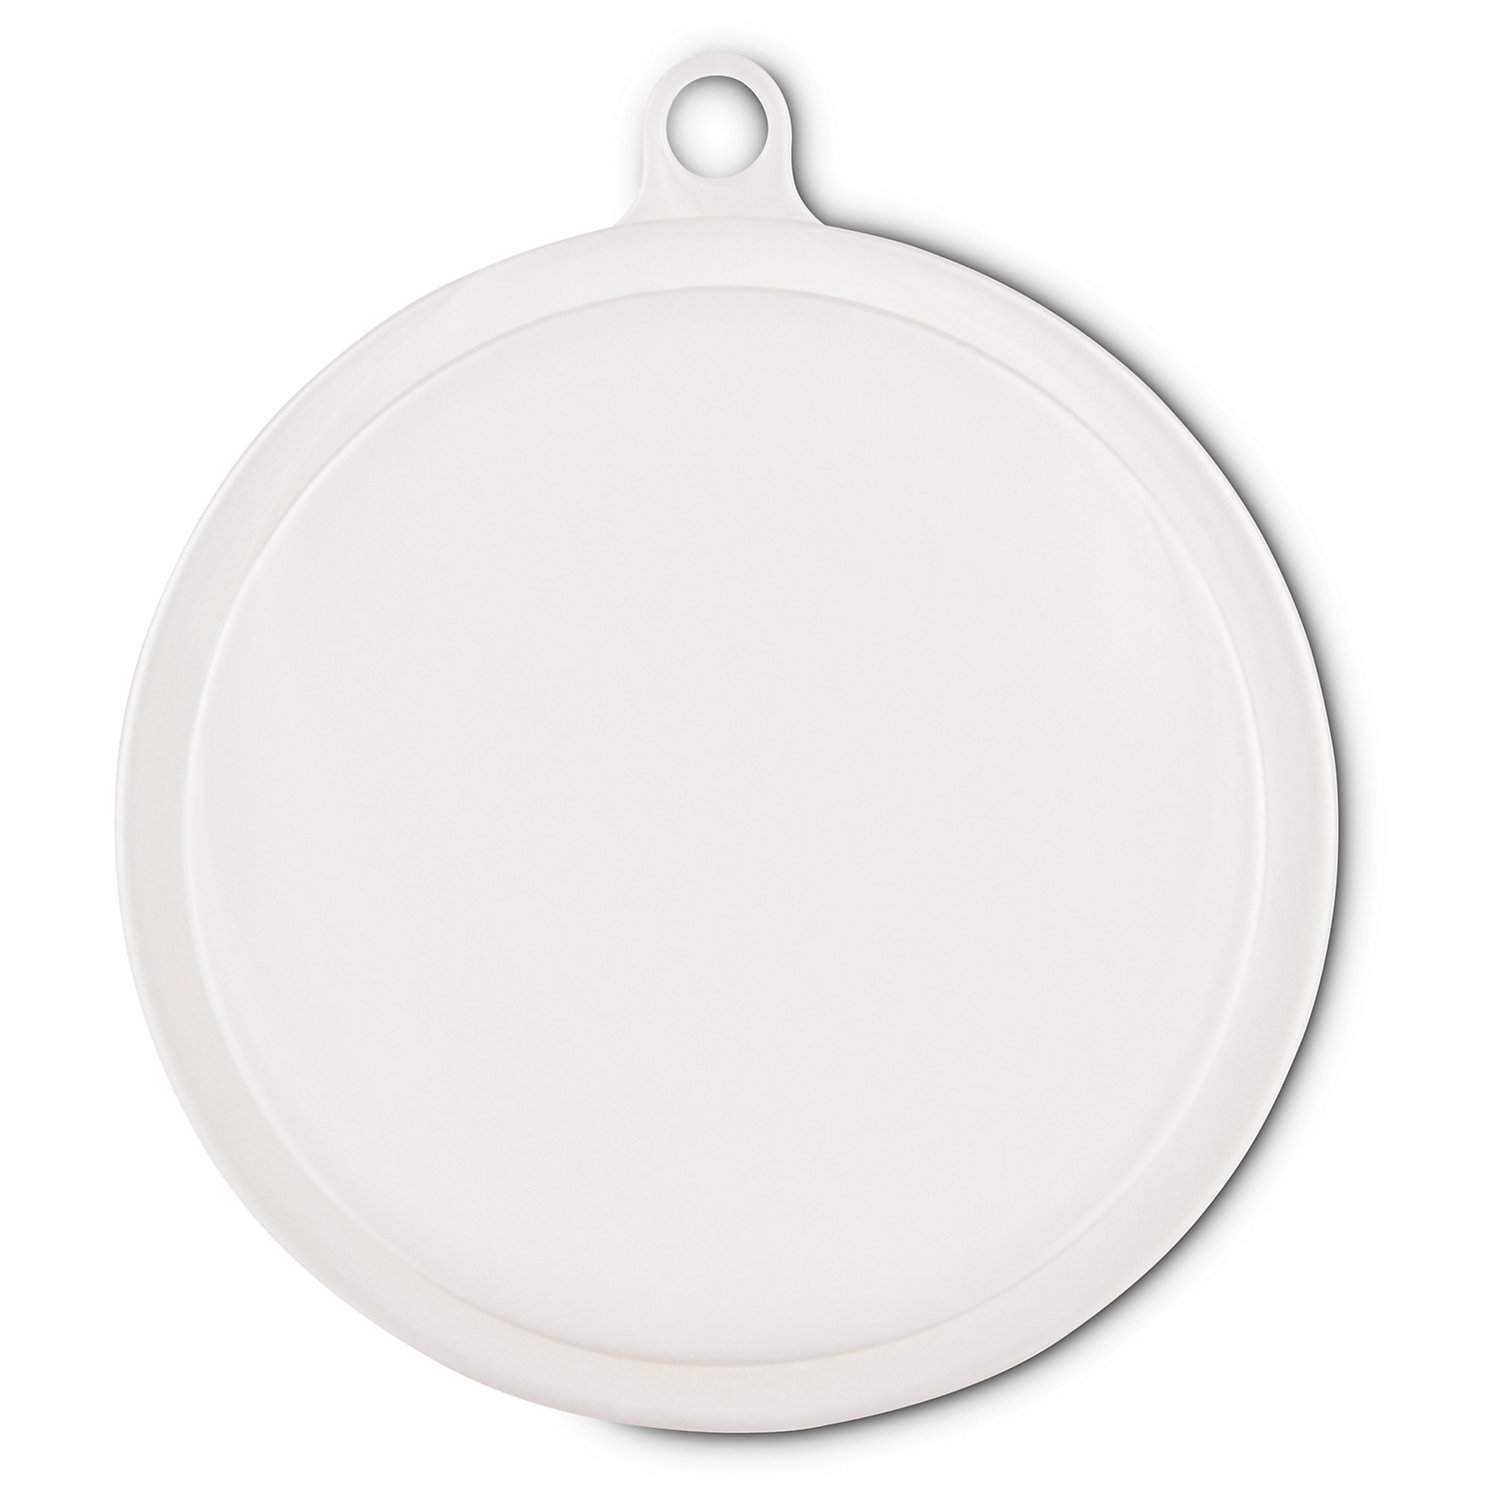 Harmony 2 In 1 Food Lid